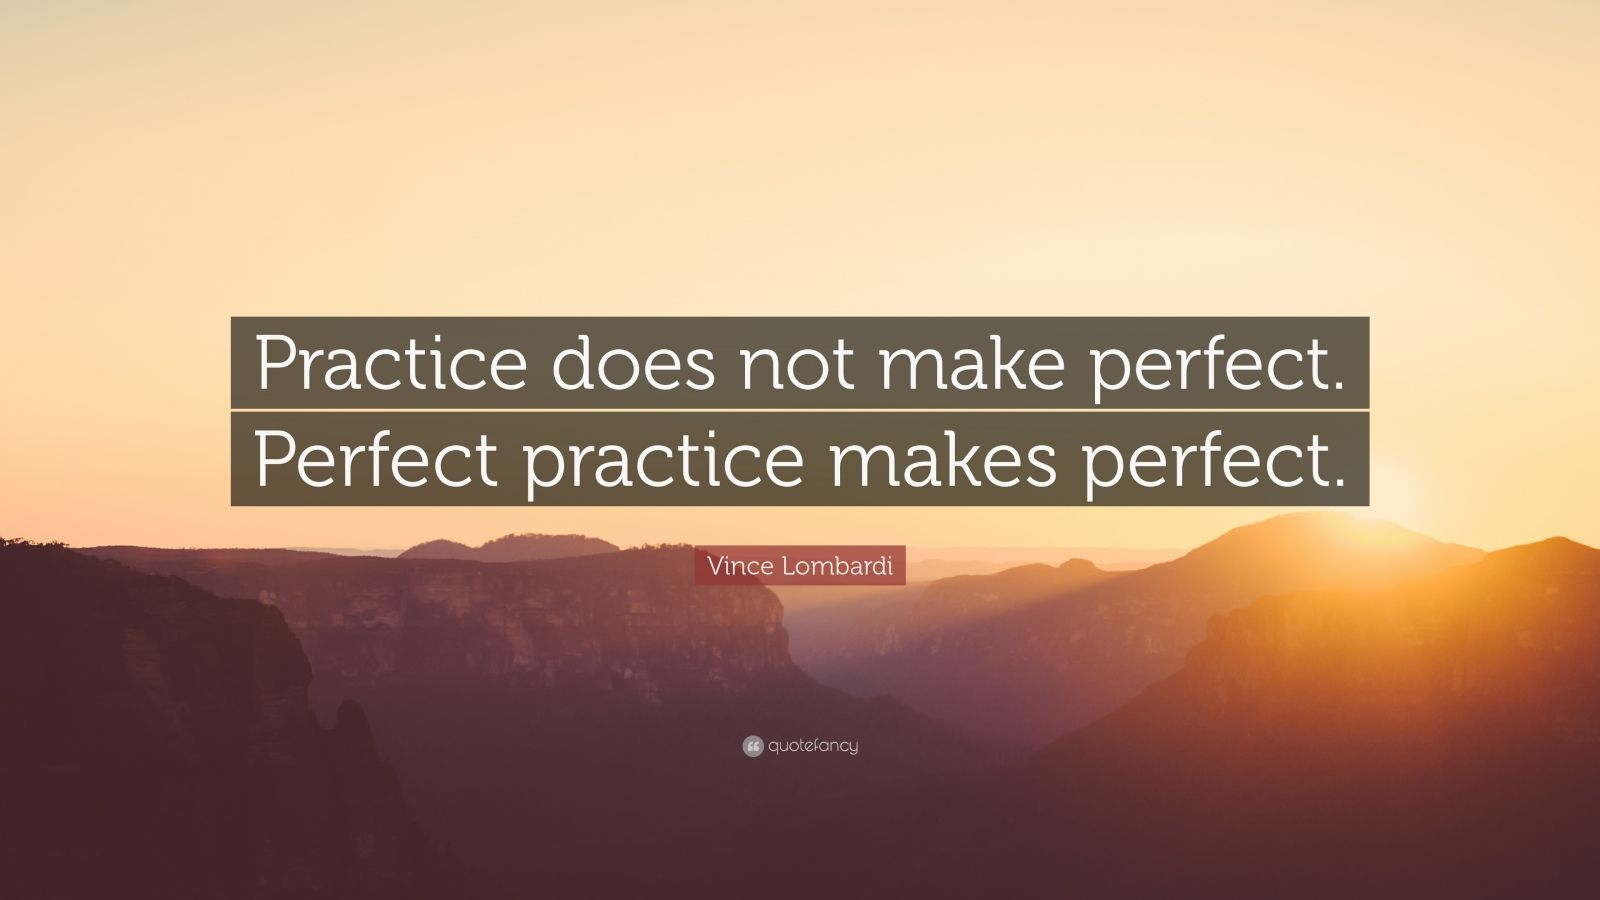 Motivational Life Quotes Wallpapers Vince Lombardi Quote Practice Does Not Make Perfect